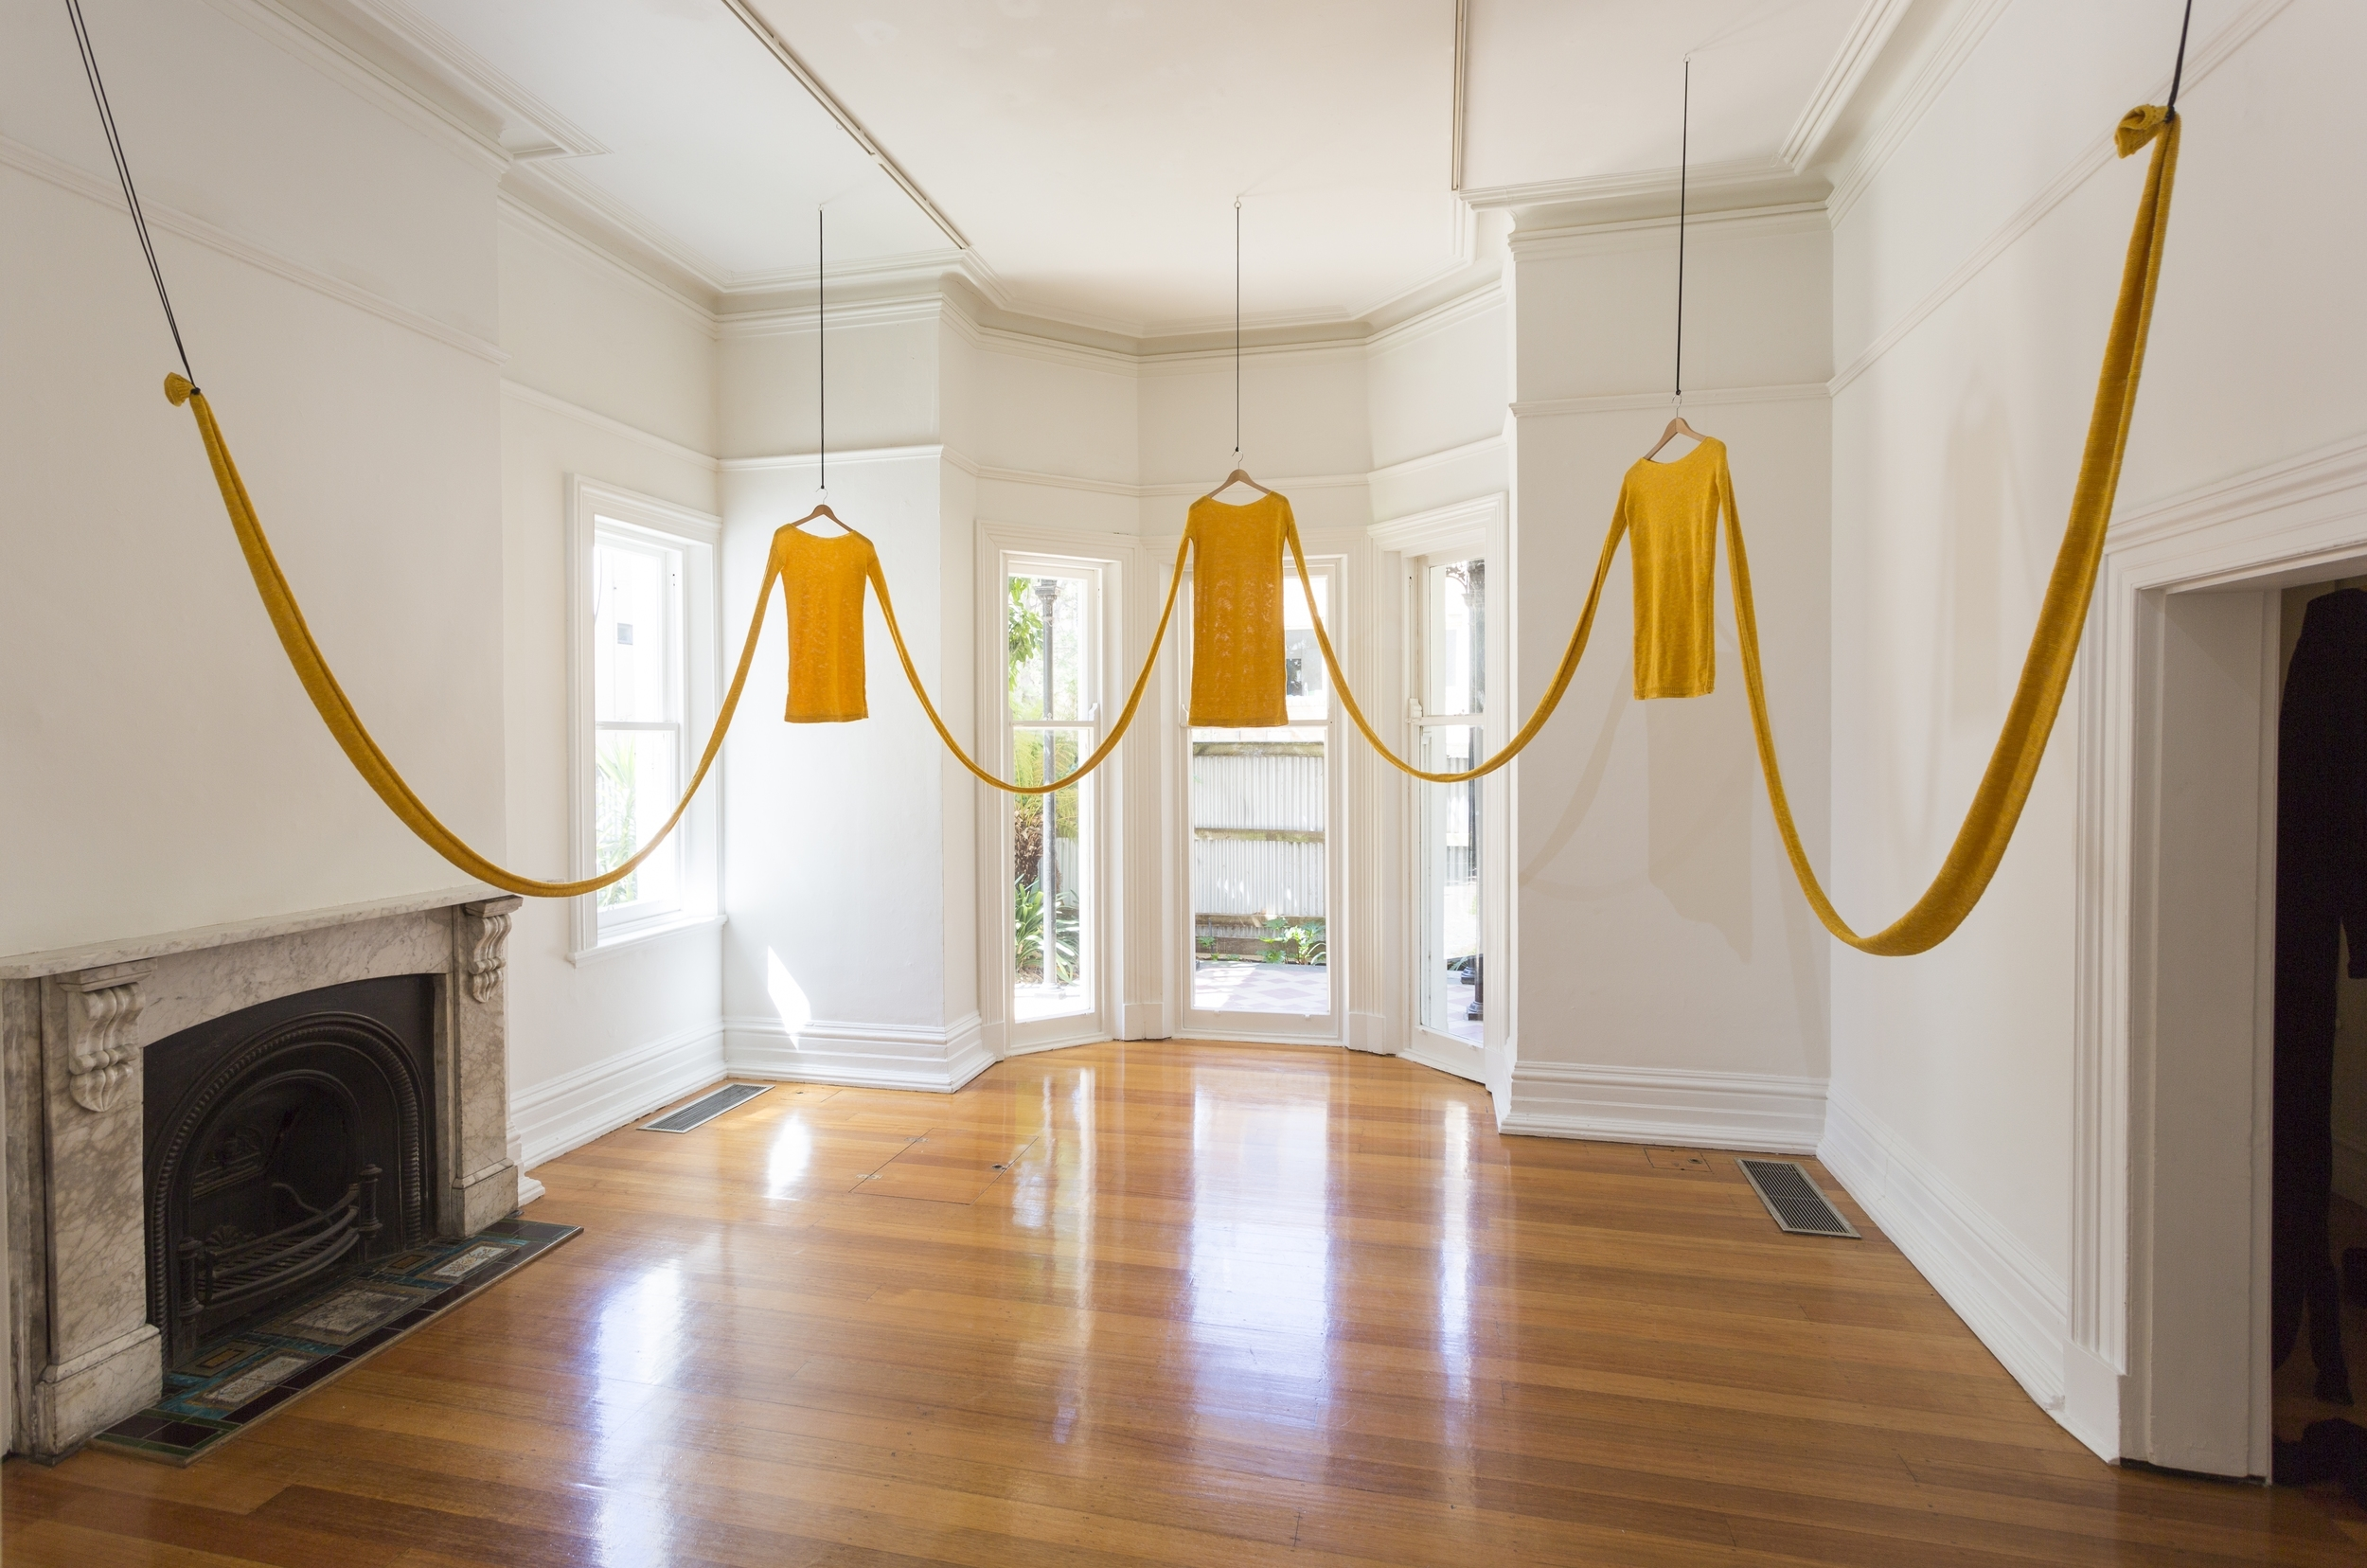 Linden Gallery installation 2016.  Photograph: David Marks